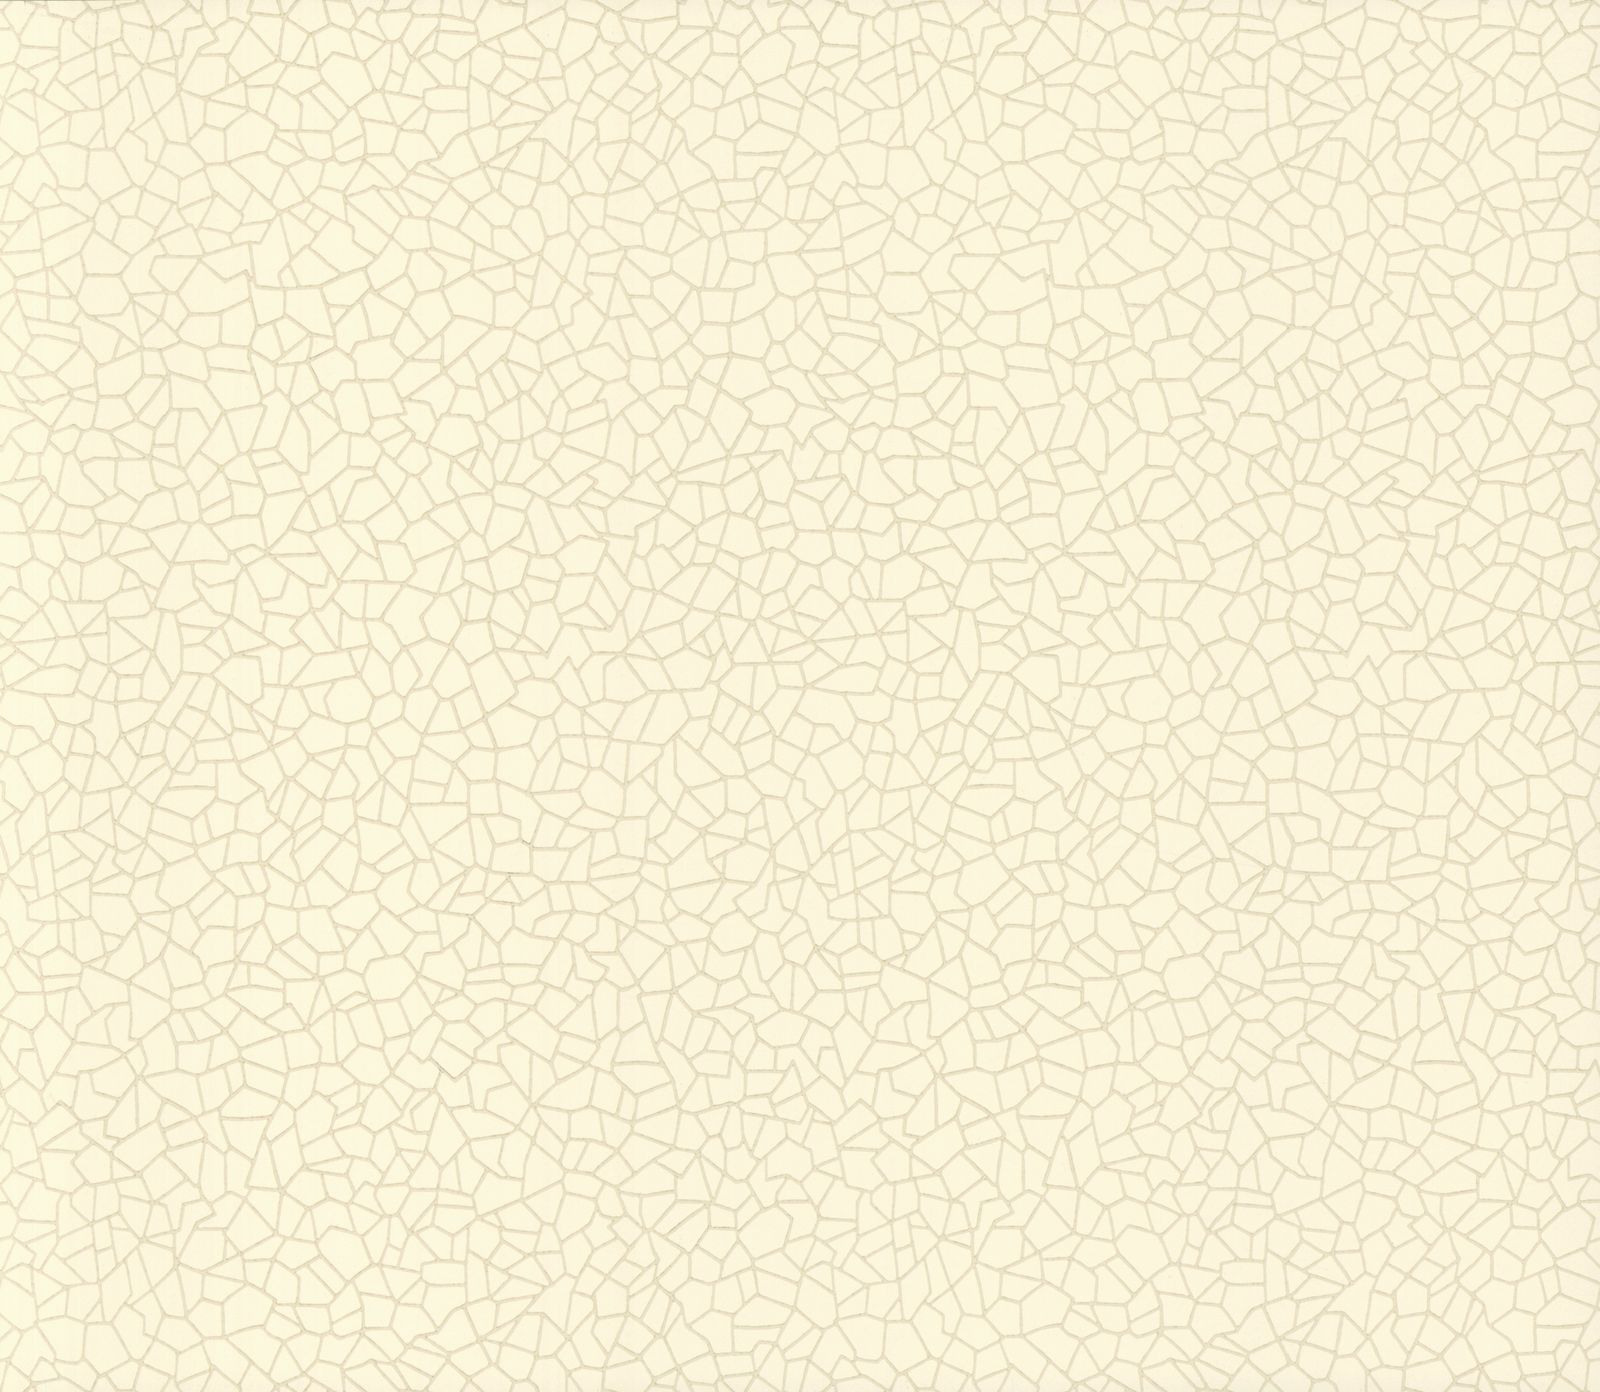 Tapetti 1838 Wallcoverings Kew beige 0,52x10,05 m